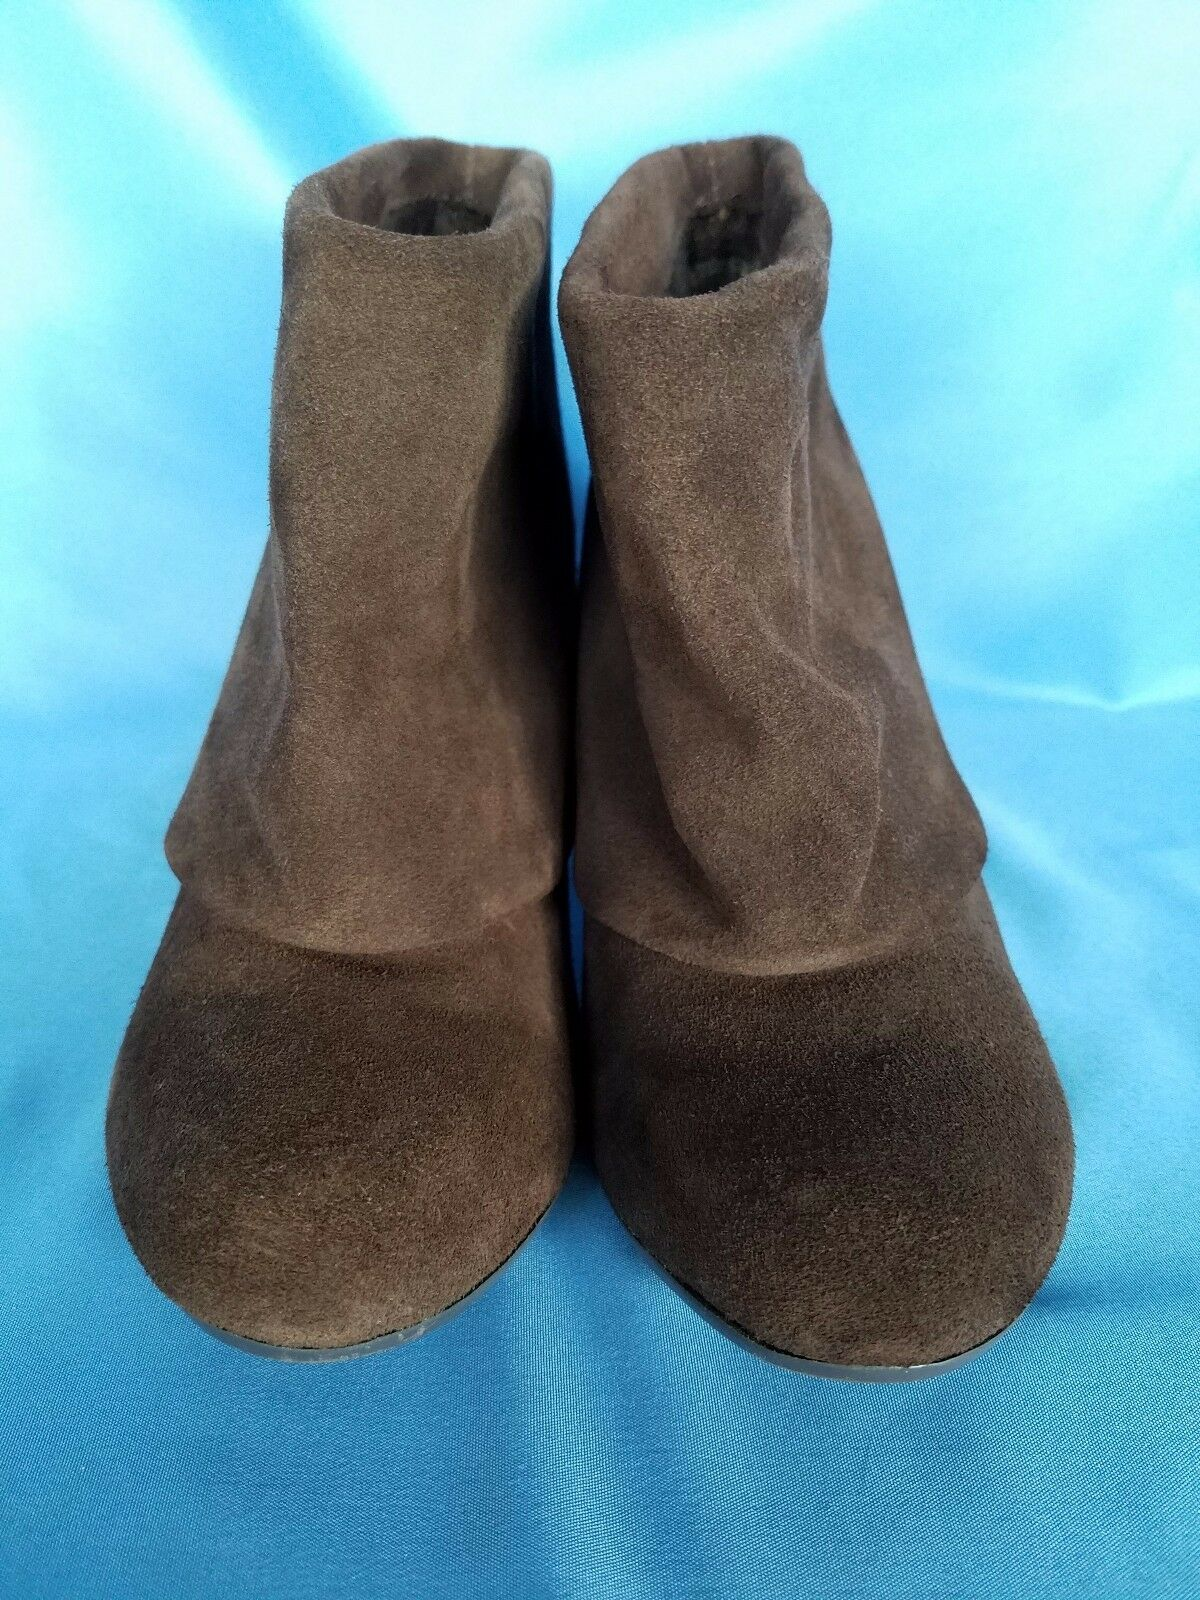 "Steve Madden Brown Size Suede Leather Ankle Boots Size Brown 6.5 M 3.5"" Heel 1b6af7"